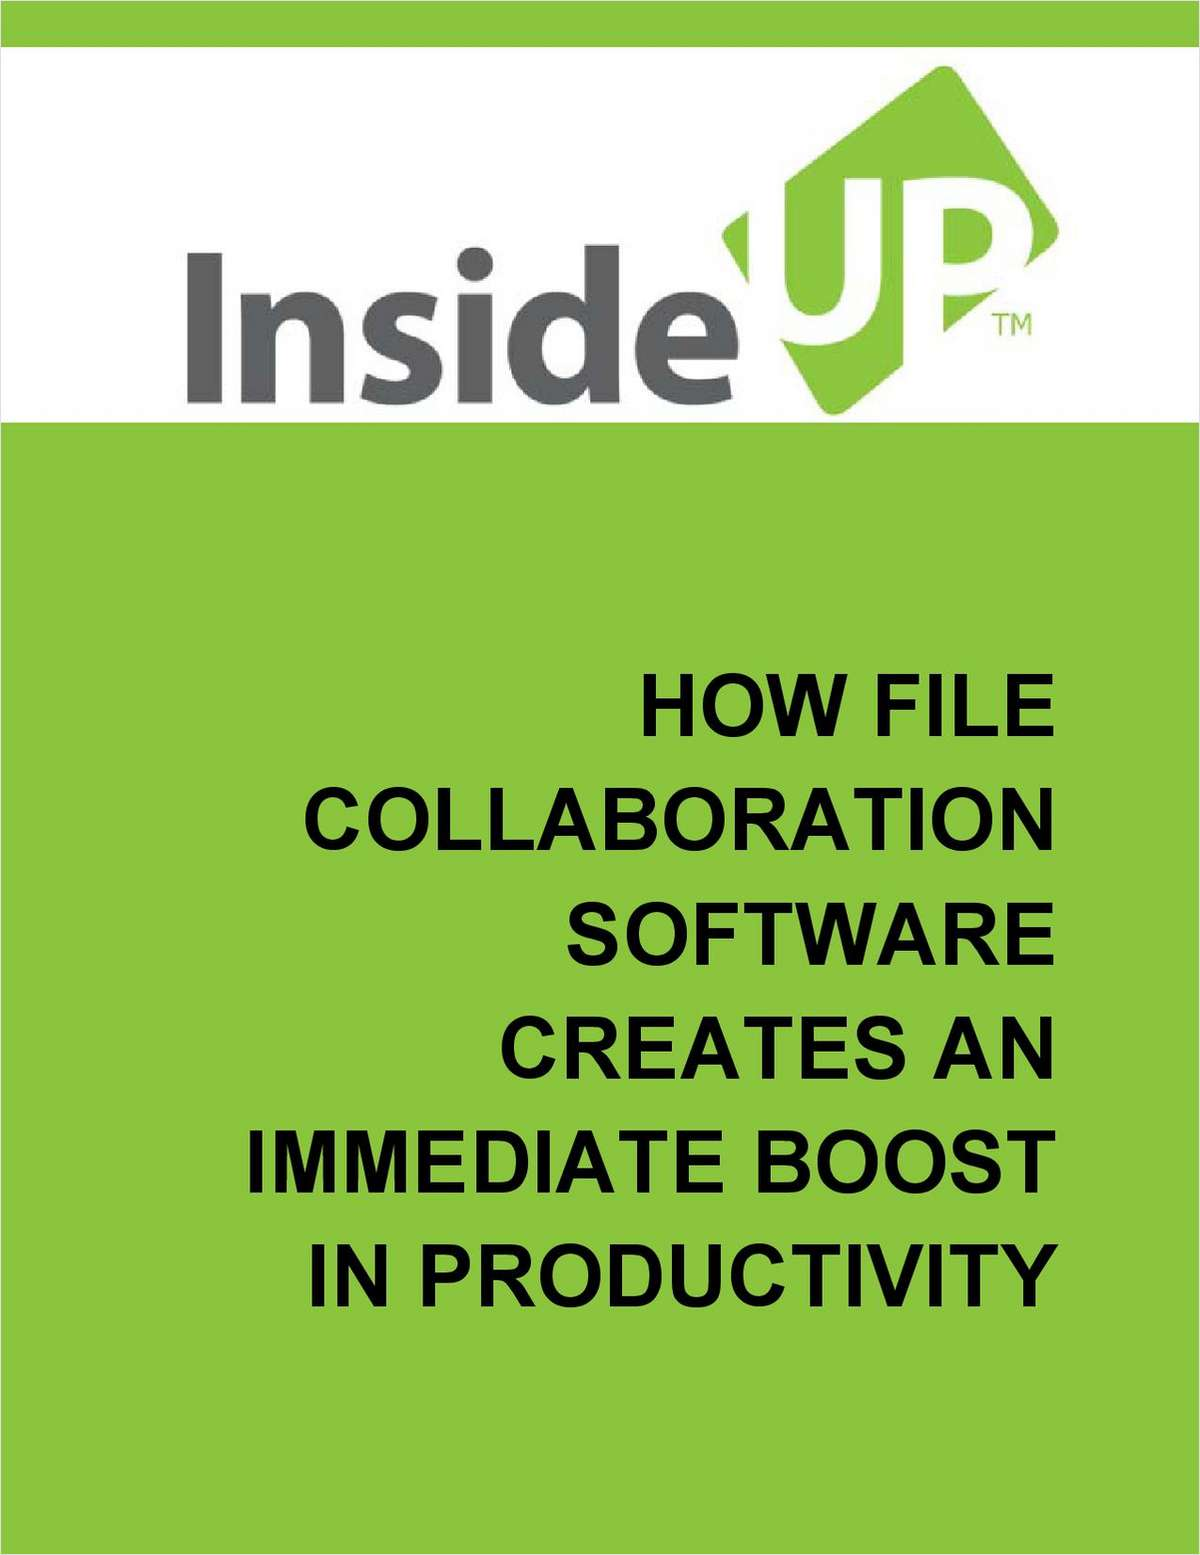 How File Collaboration Software Creates an Immediate Boost in Productivity